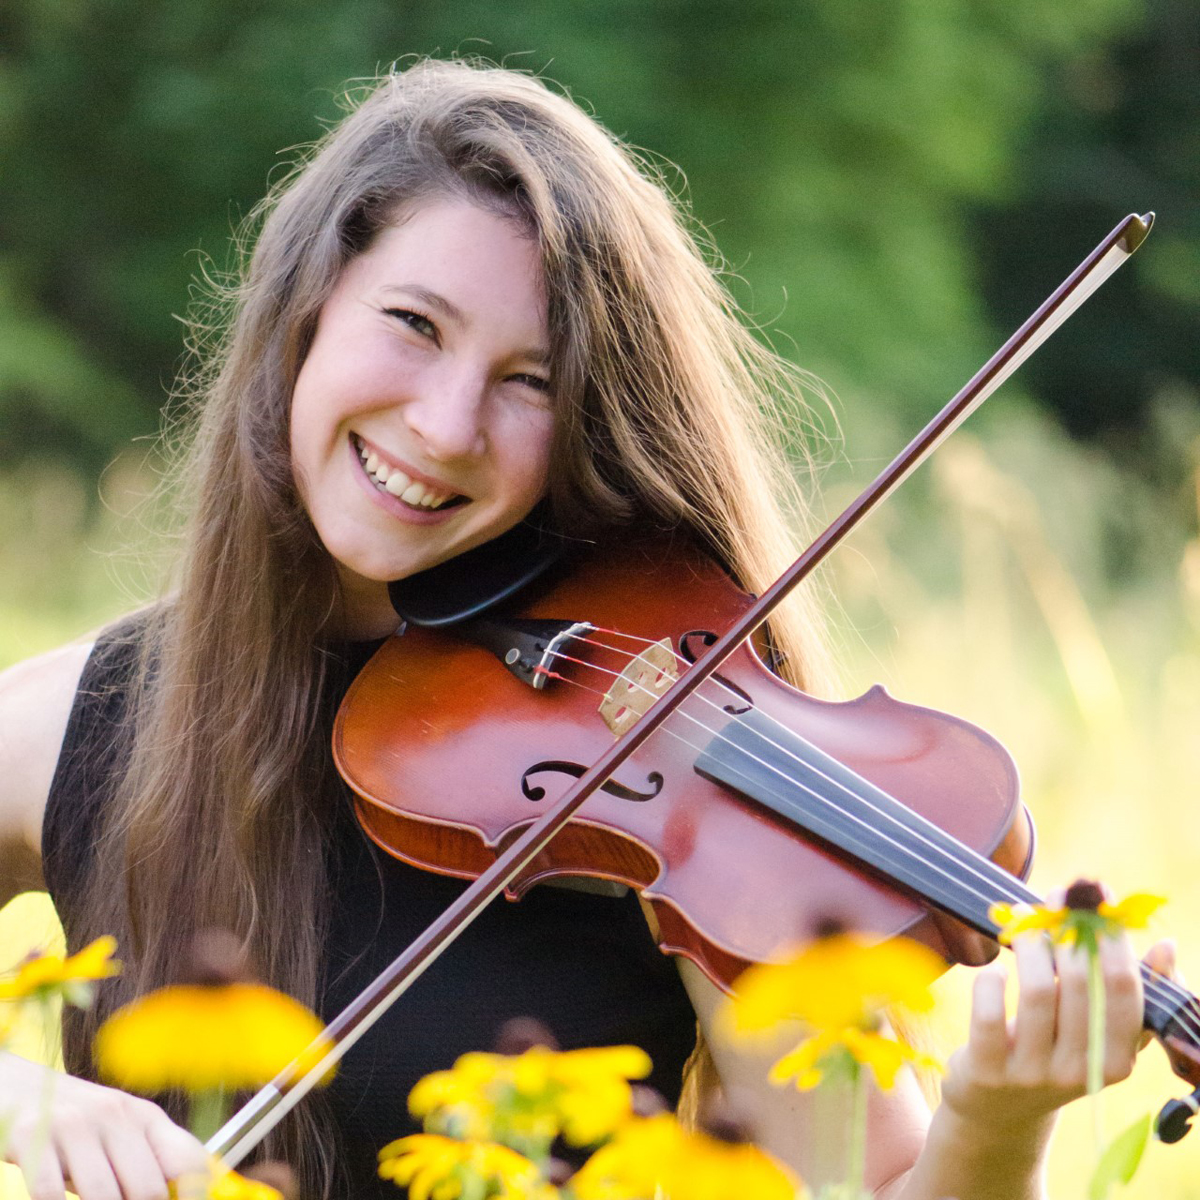 MTSU rising sophomore Sophie Buck will be one of the musicians who will be performing often at the Main Street Saturday Market in downtown Murfreesboro, starting May 22. She plays fiddle and is a graphic design major who is minoring in music. (Submitted photo)